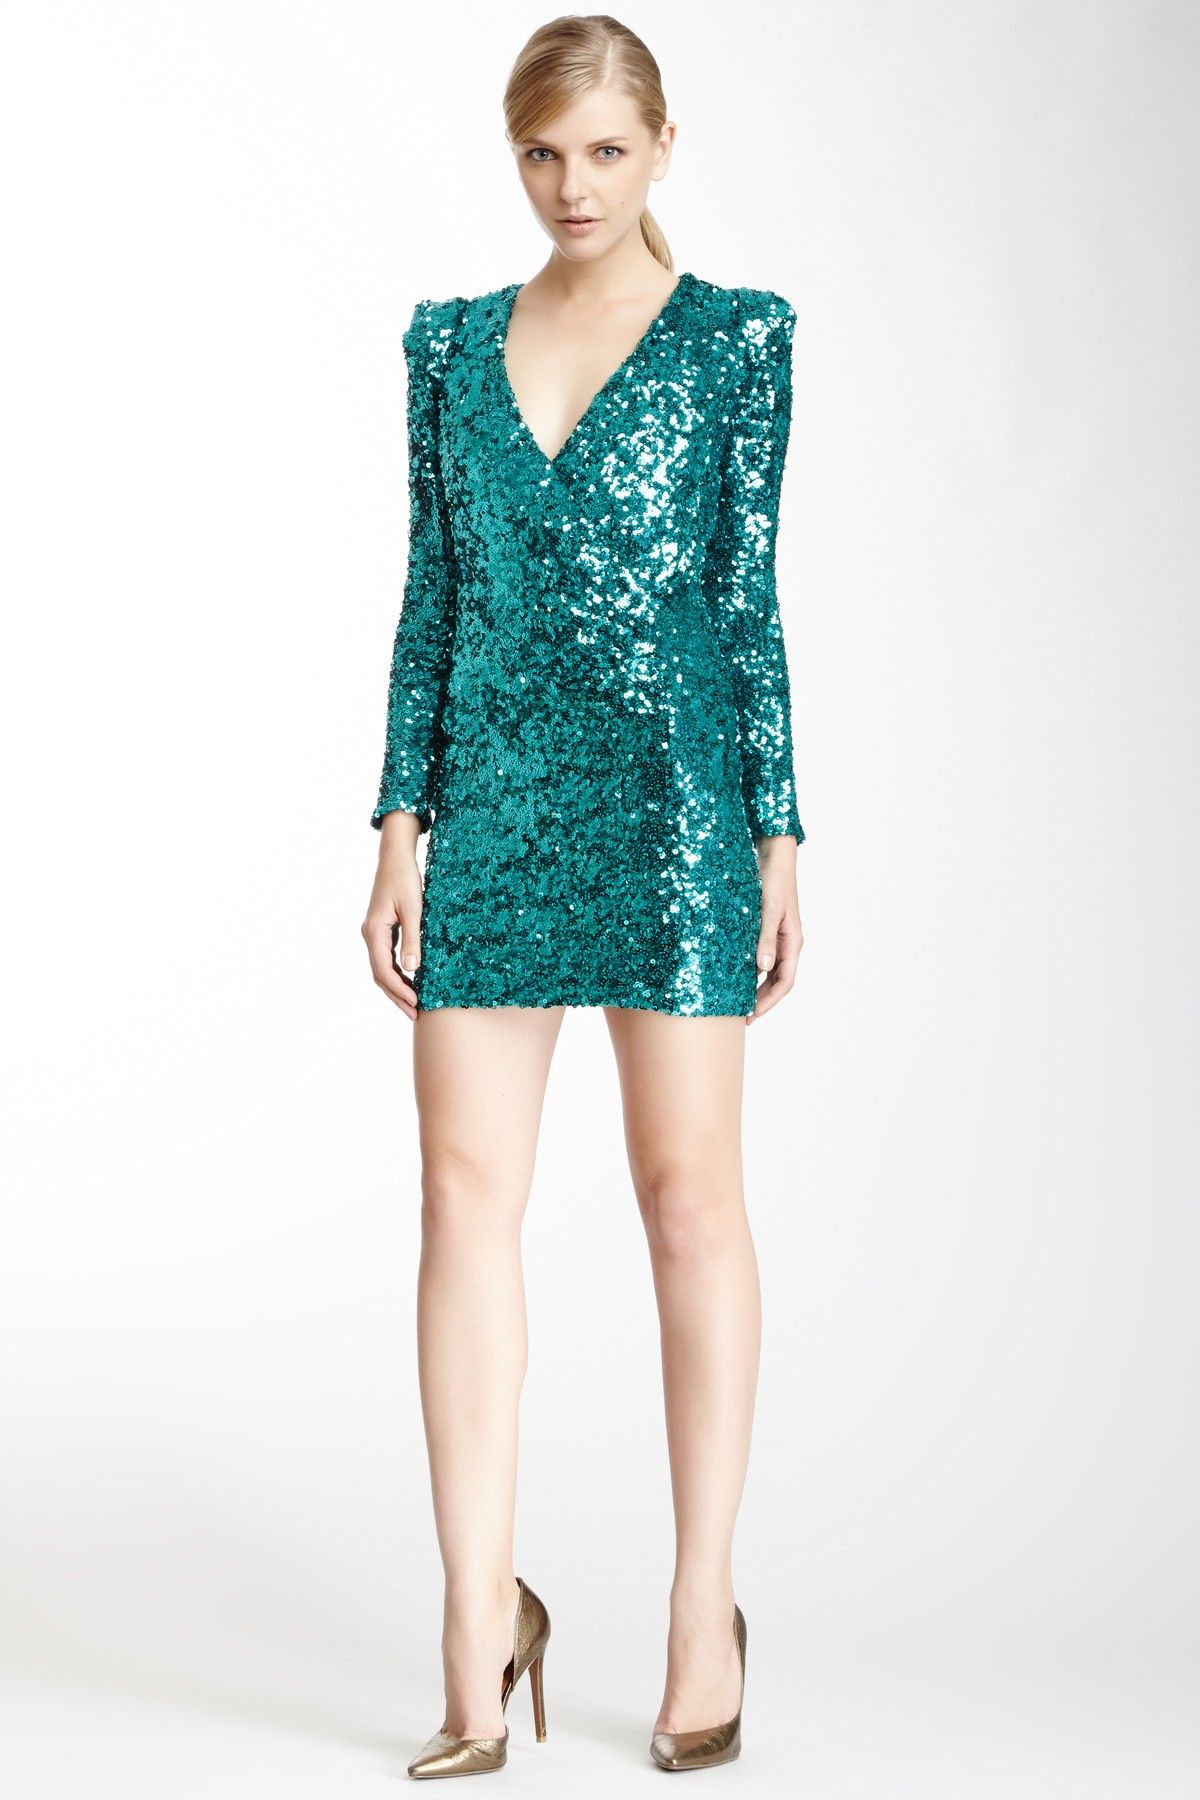 New Years party dress | DRESSES | Pinterest | Sequins, Turquoise and ...